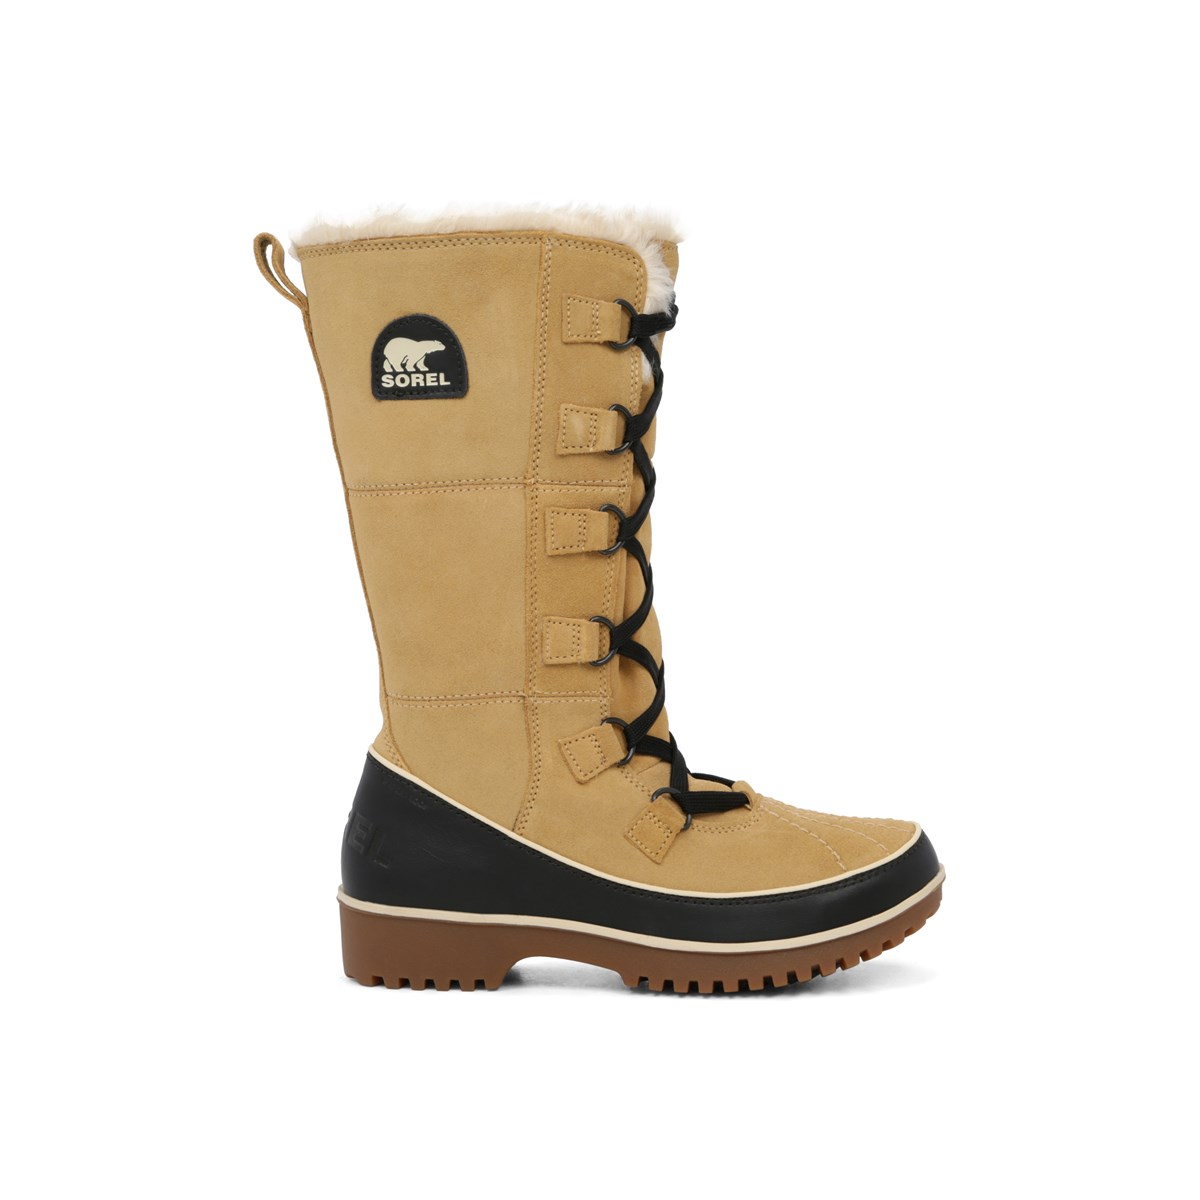 7bbd4bbc75ab Women s Tivoli High II 1553251 X Winter Boot. Previous. default view ...